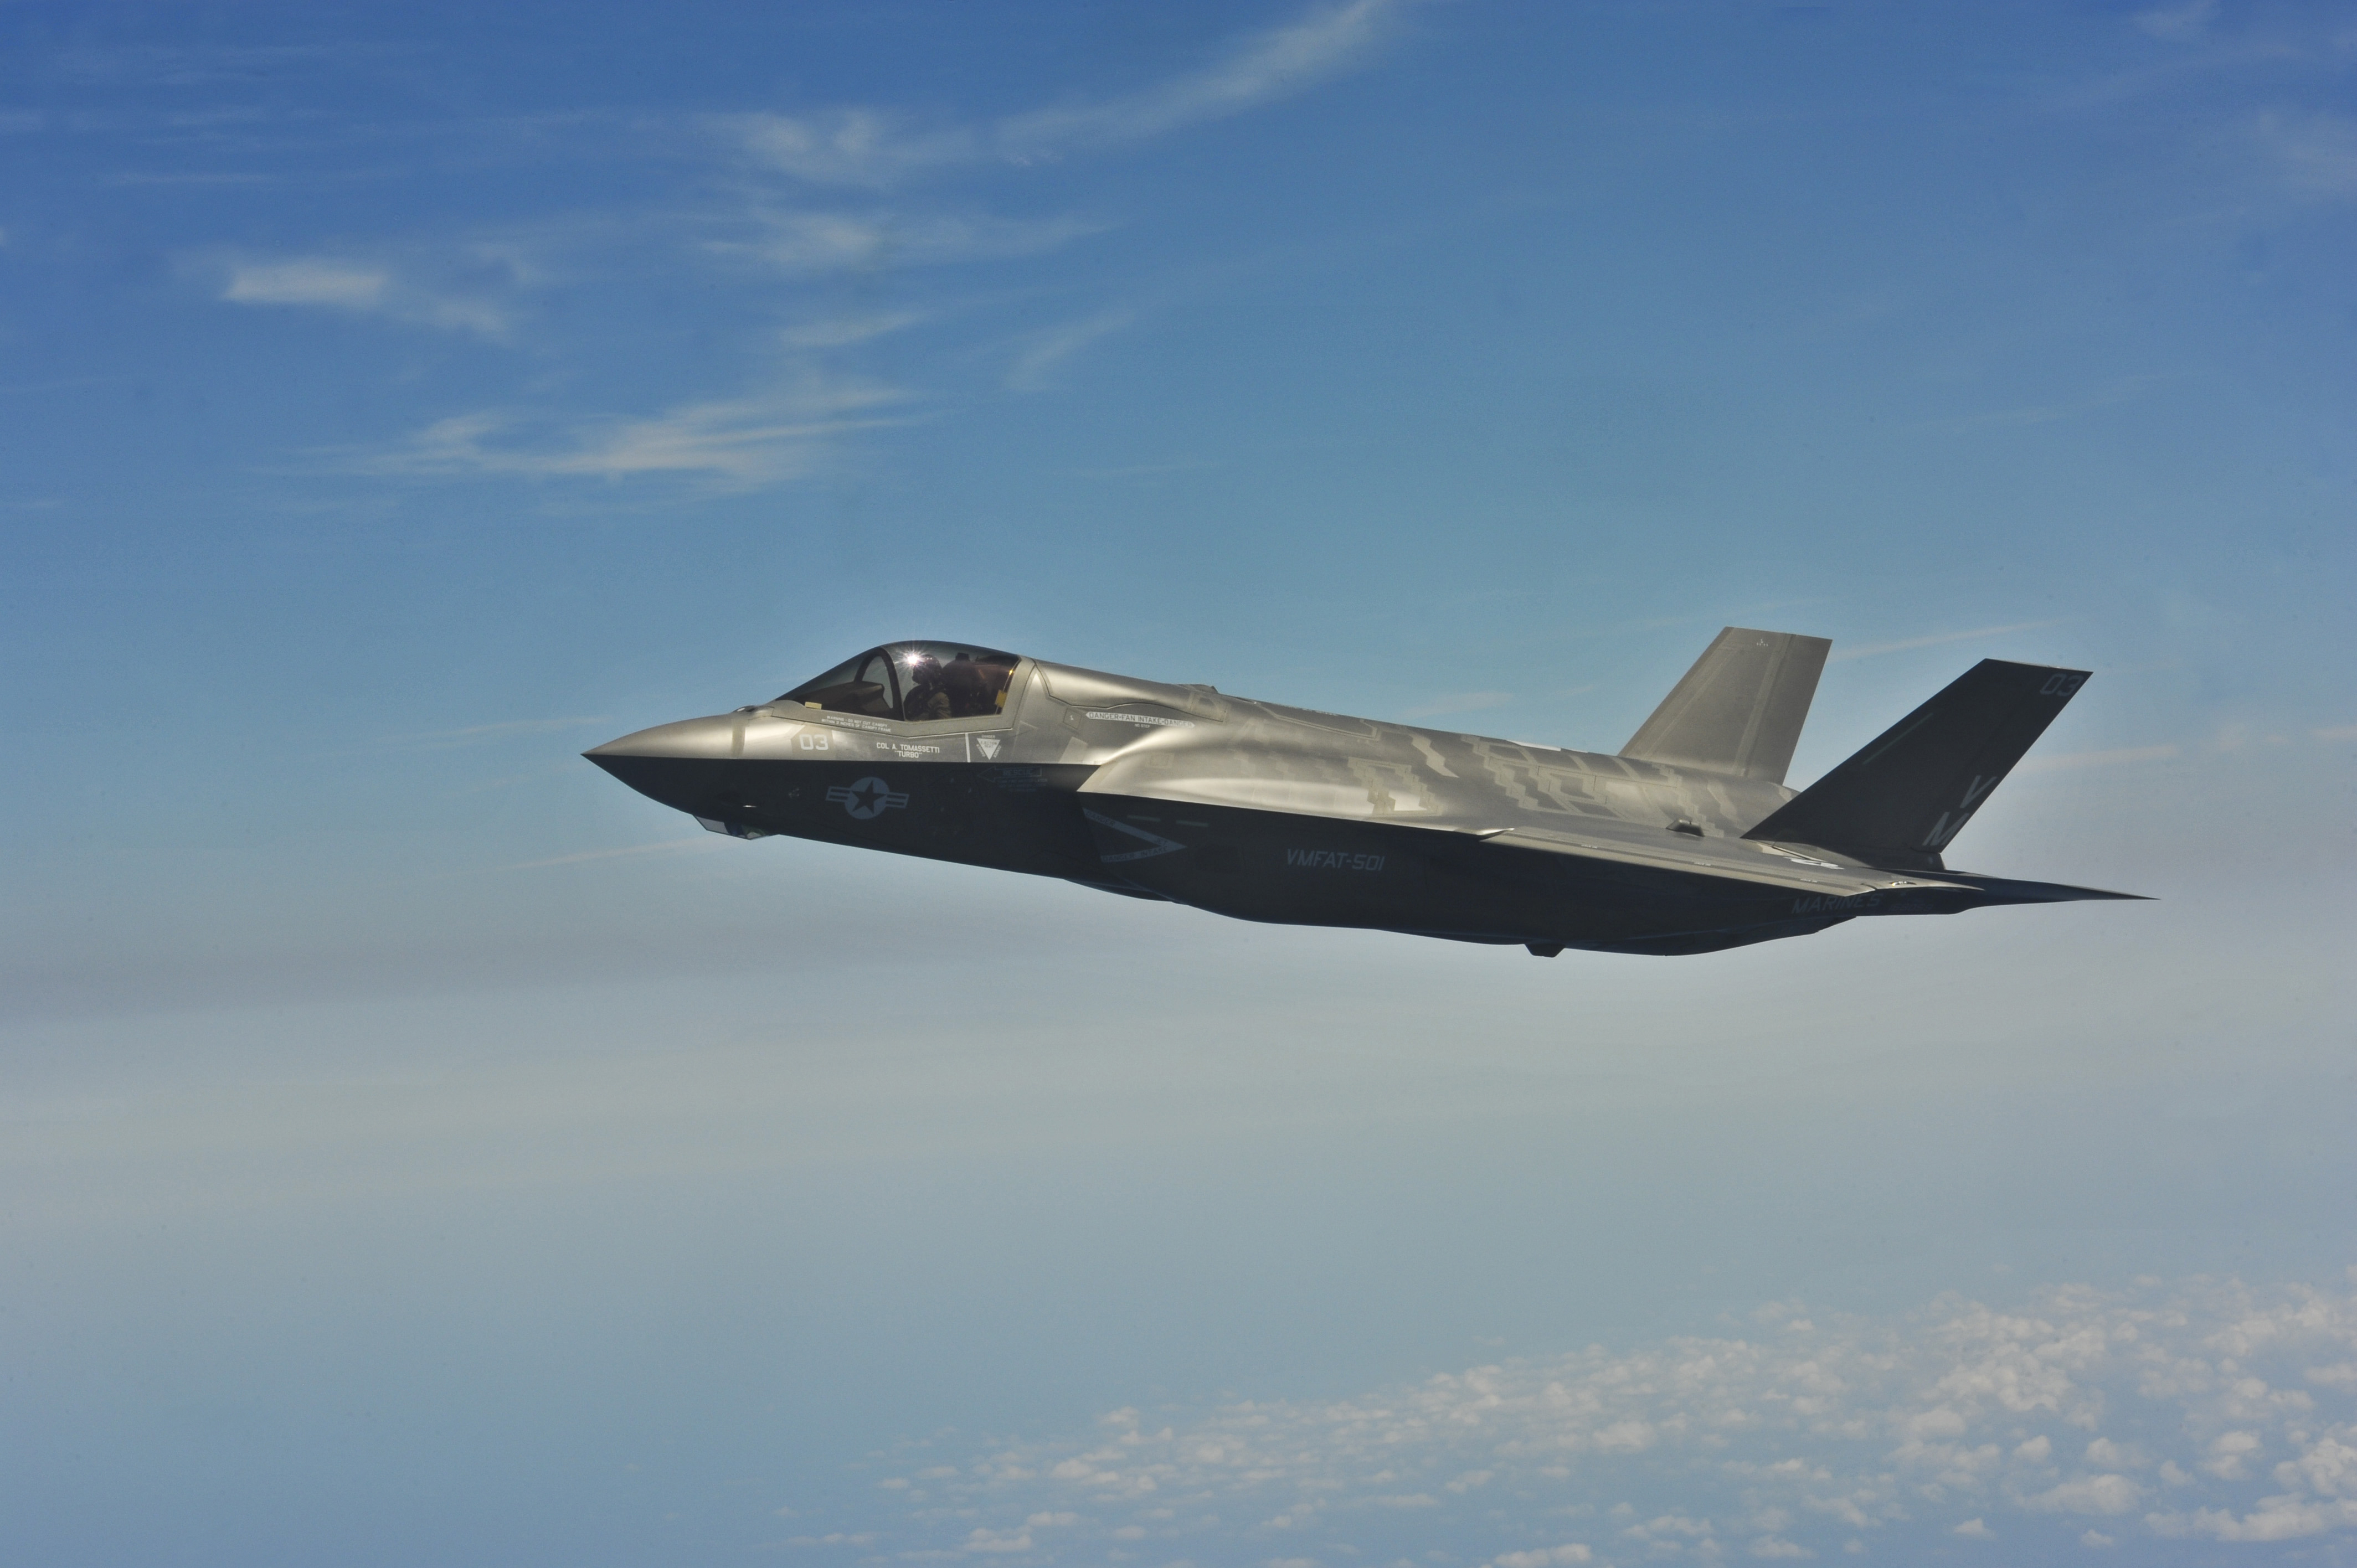 file a u s marine corps f 35 lightning ii aircraft assigned to naval air station pensacola. Black Bedroom Furniture Sets. Home Design Ideas